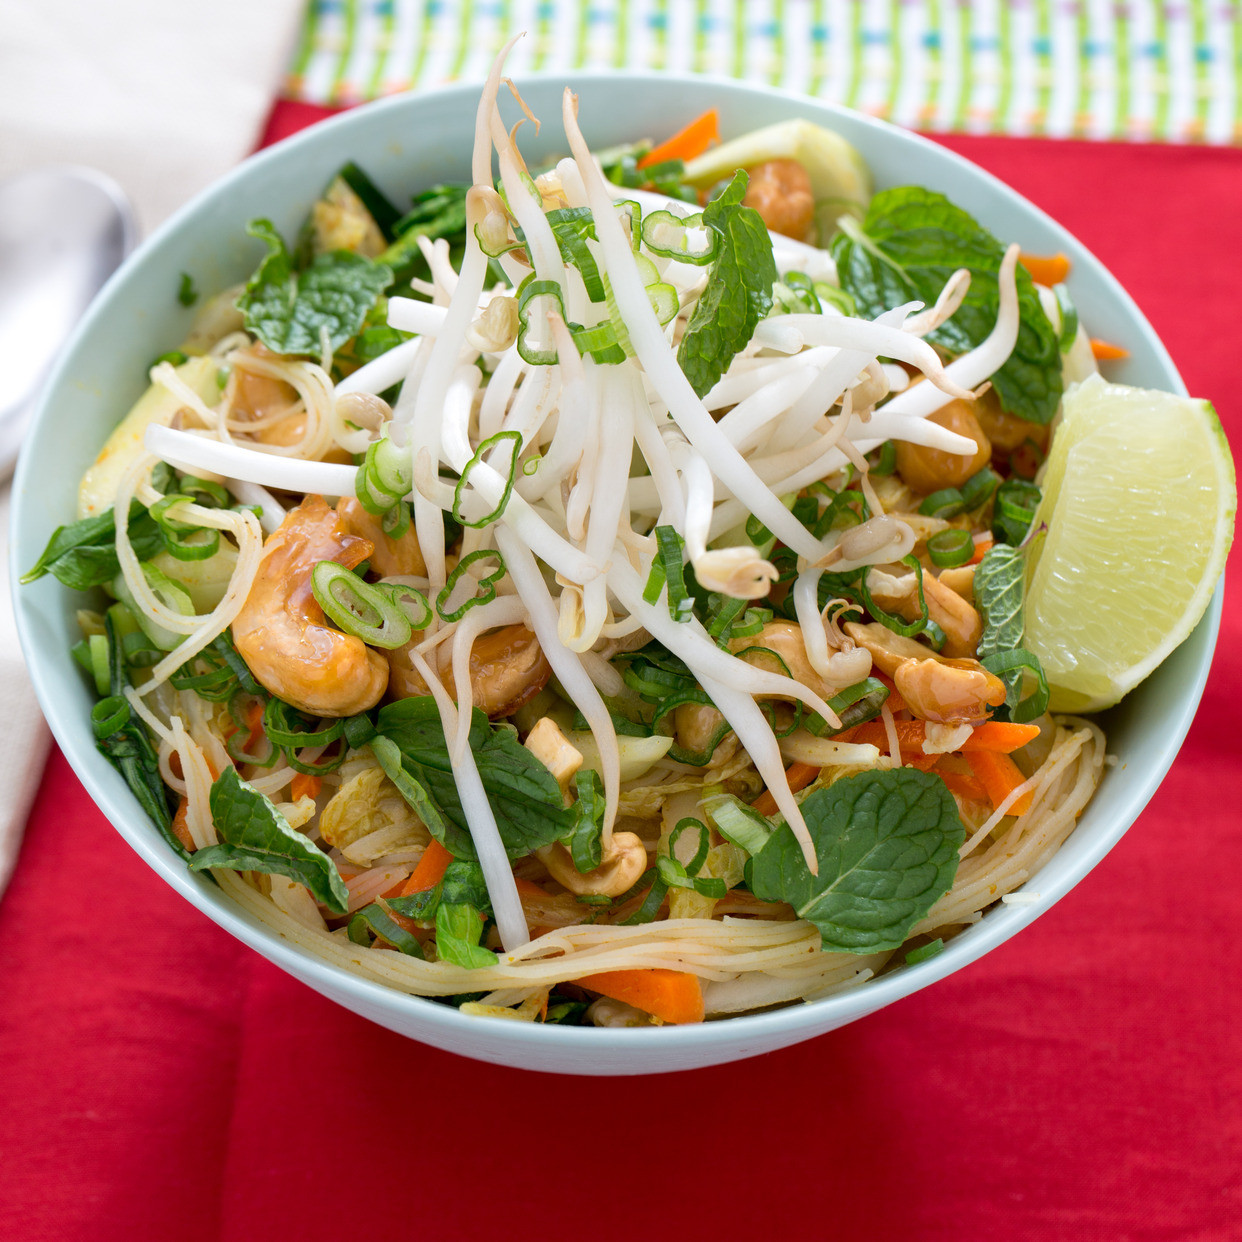 Vermicelli Rice Noodles  Recipe Curried Vermicelli Noodles with Bok Choy Bean